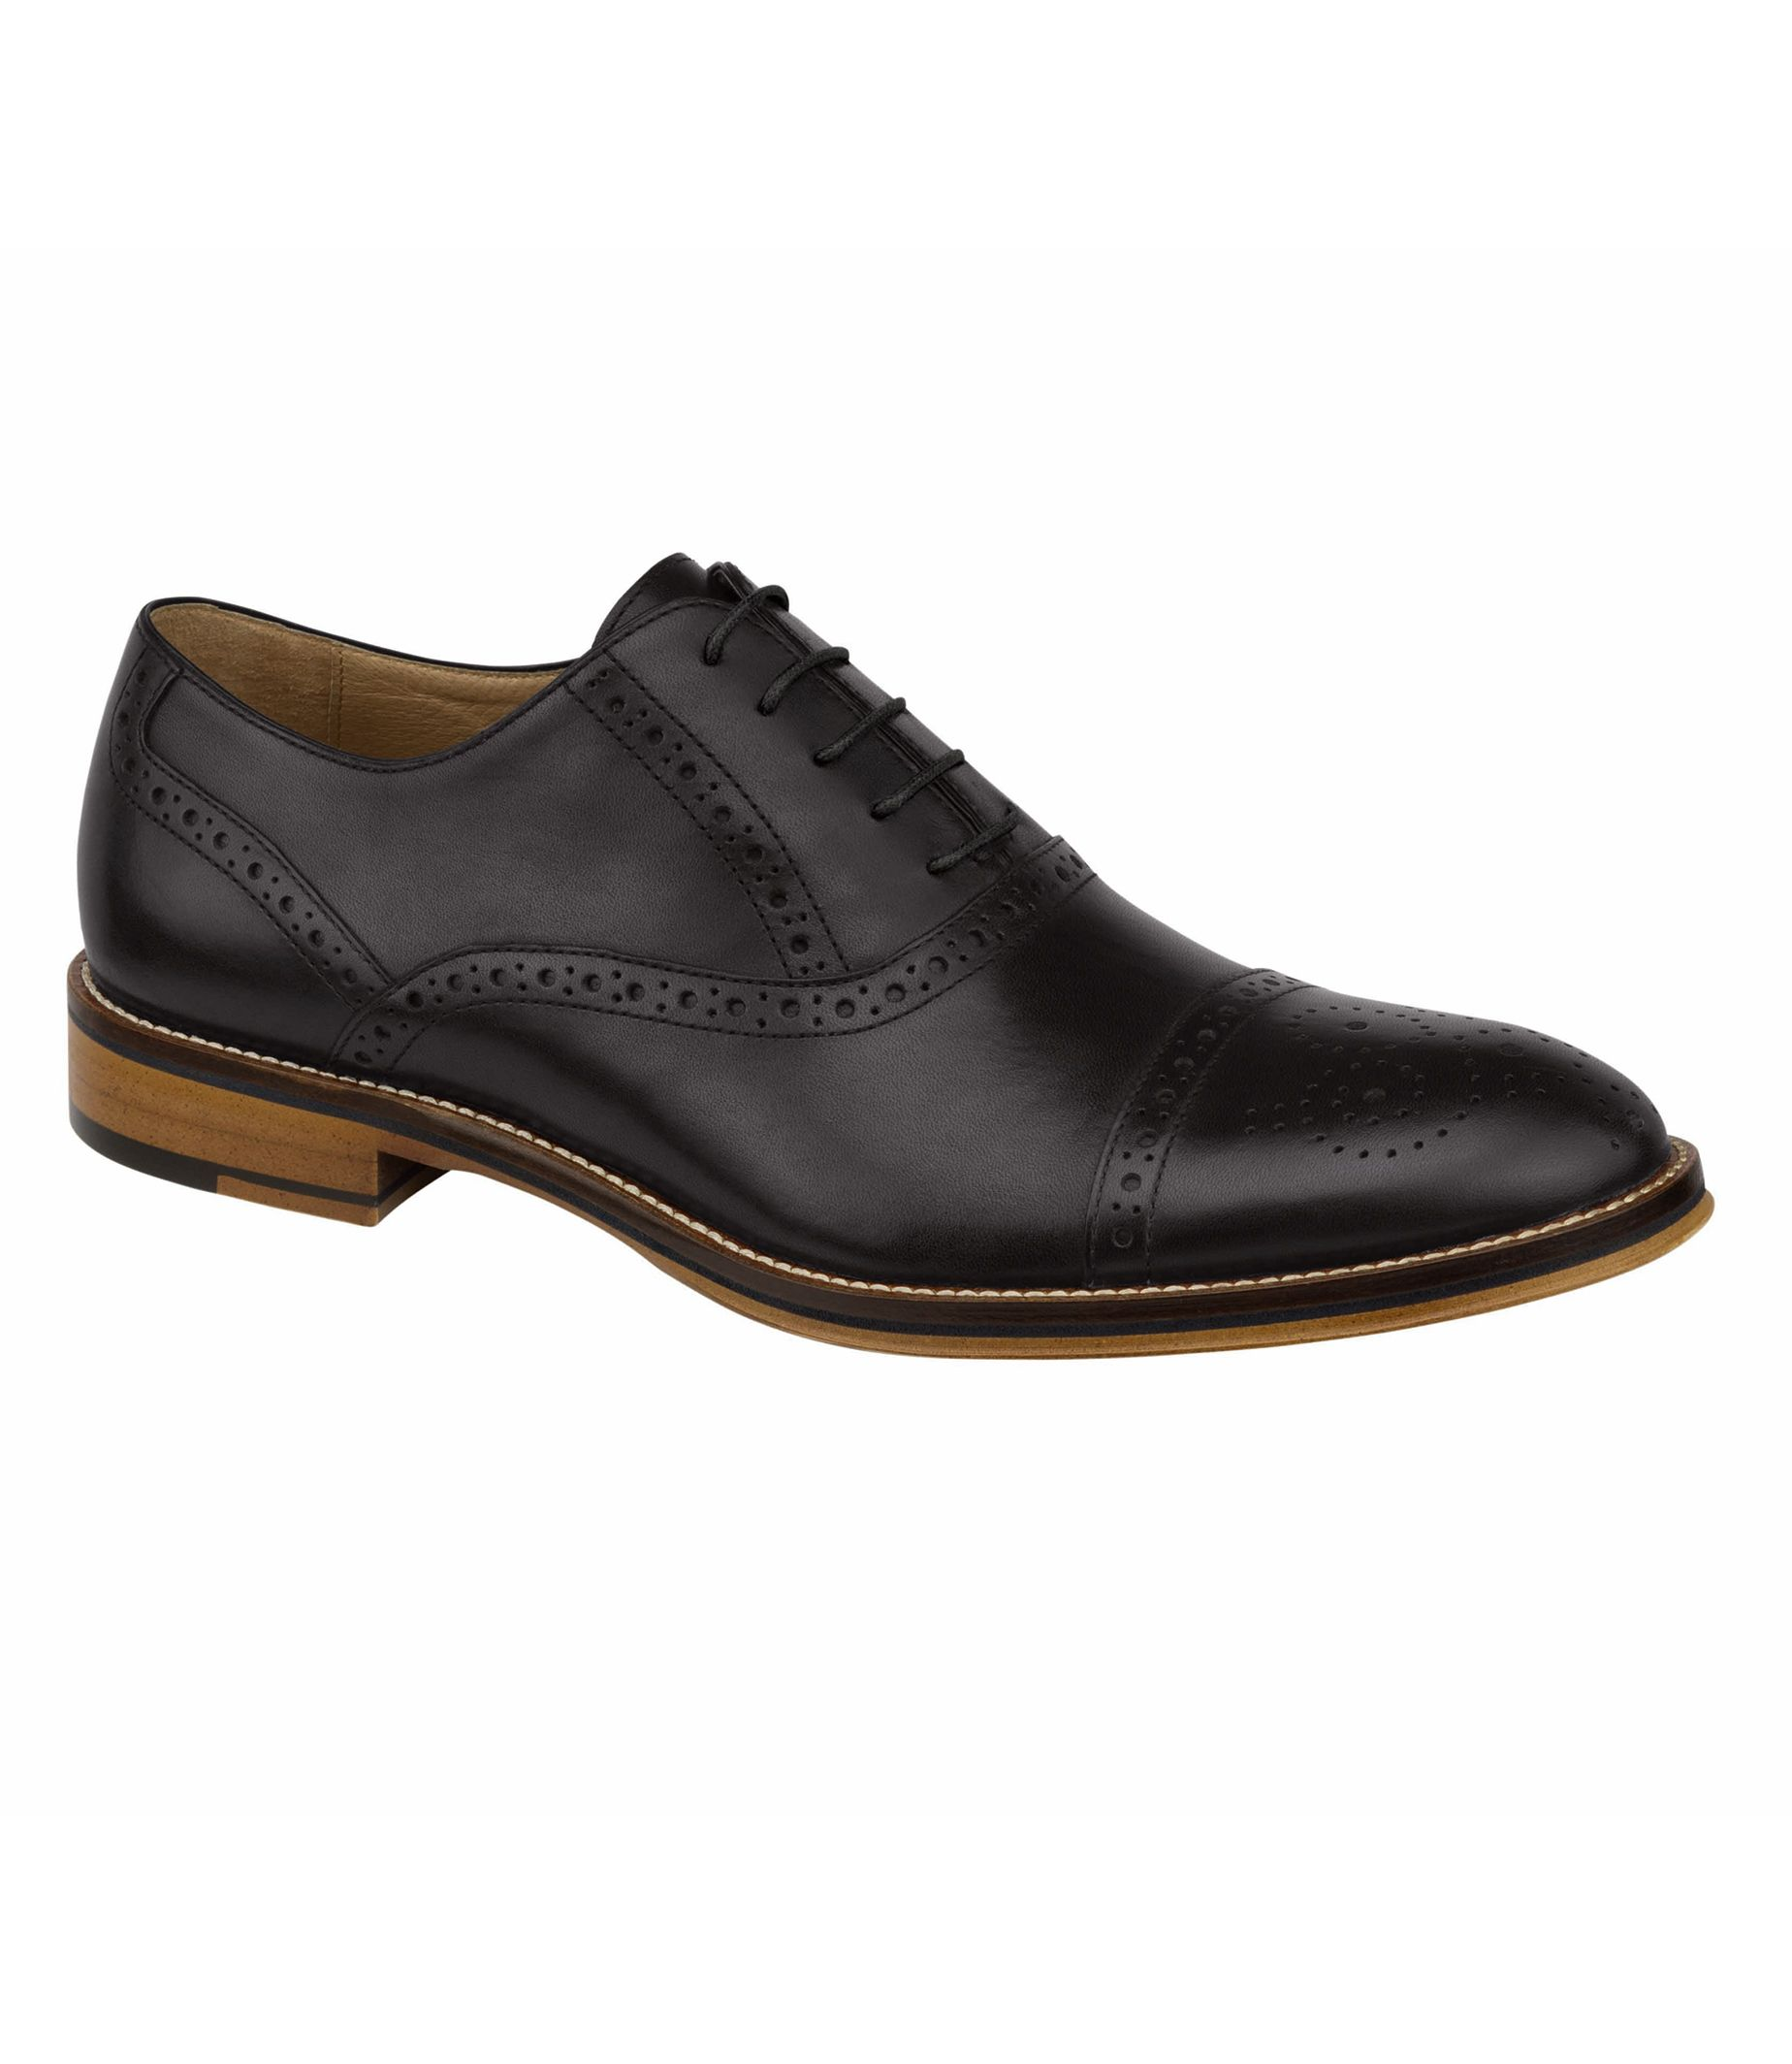 Conrad Cap Toe Shoe by Johnston and Murp          hy